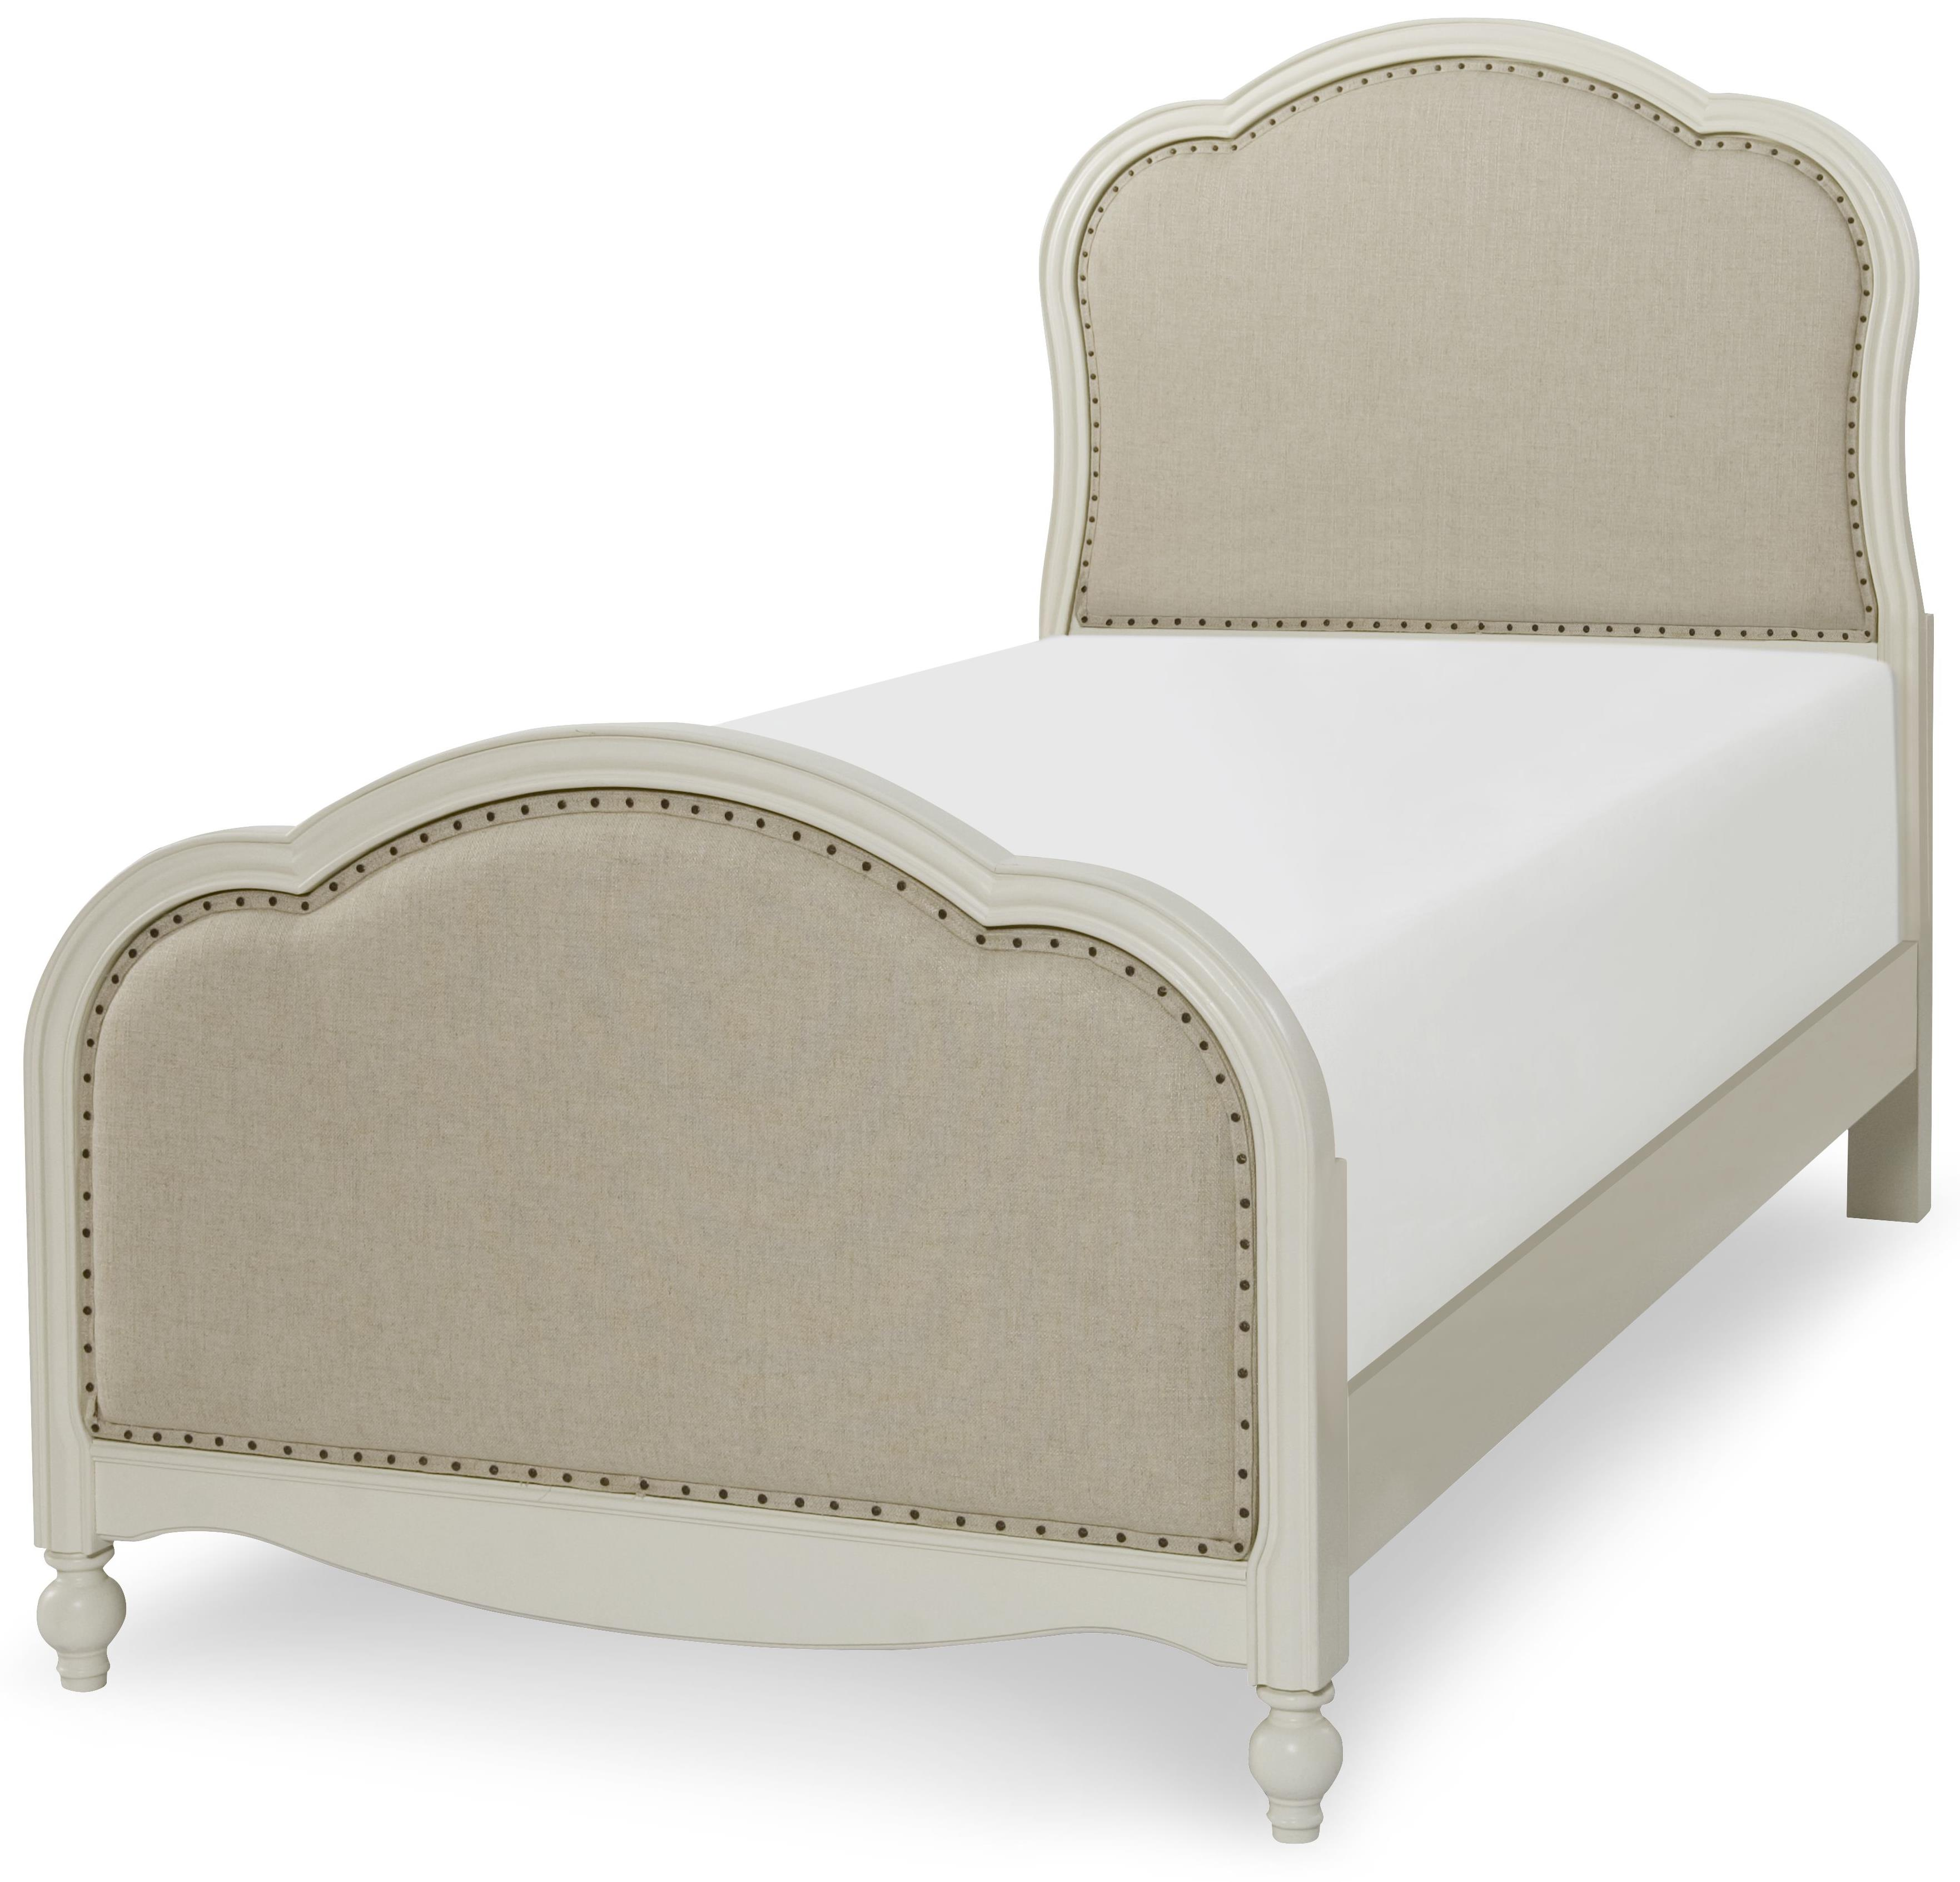 victoria panel twin bed with upholstered tea stain woven fabric by  - victoria panel twin bed with upholstered tea stain woven fabric